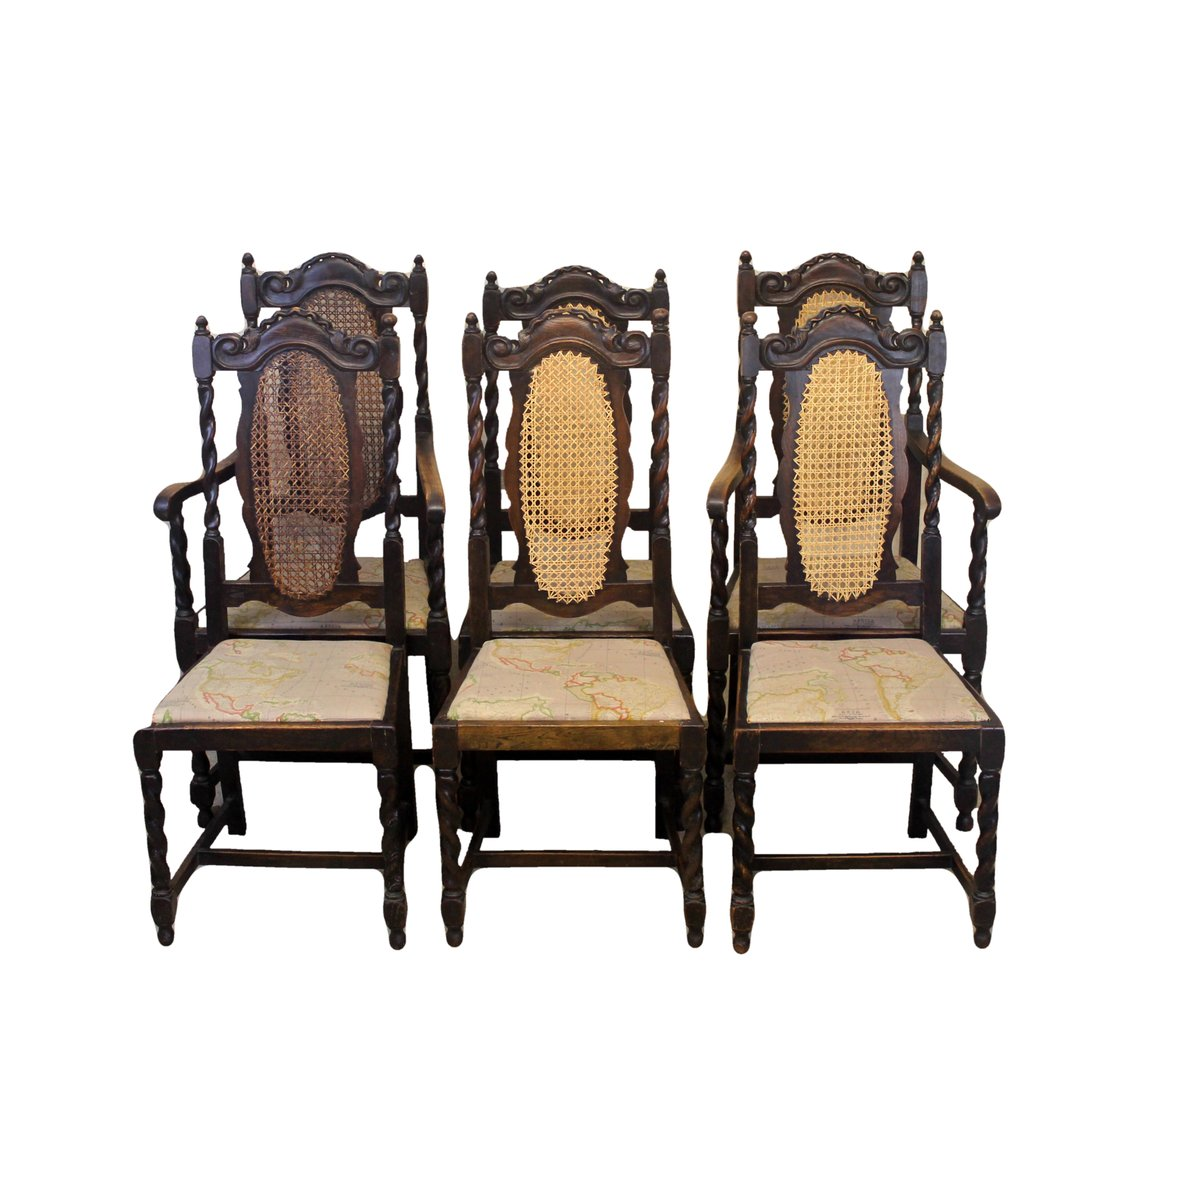 Peachy Antique Oak Dining Chairs Set Of 6 Pabps2019 Chair Design Images Pabps2019Com